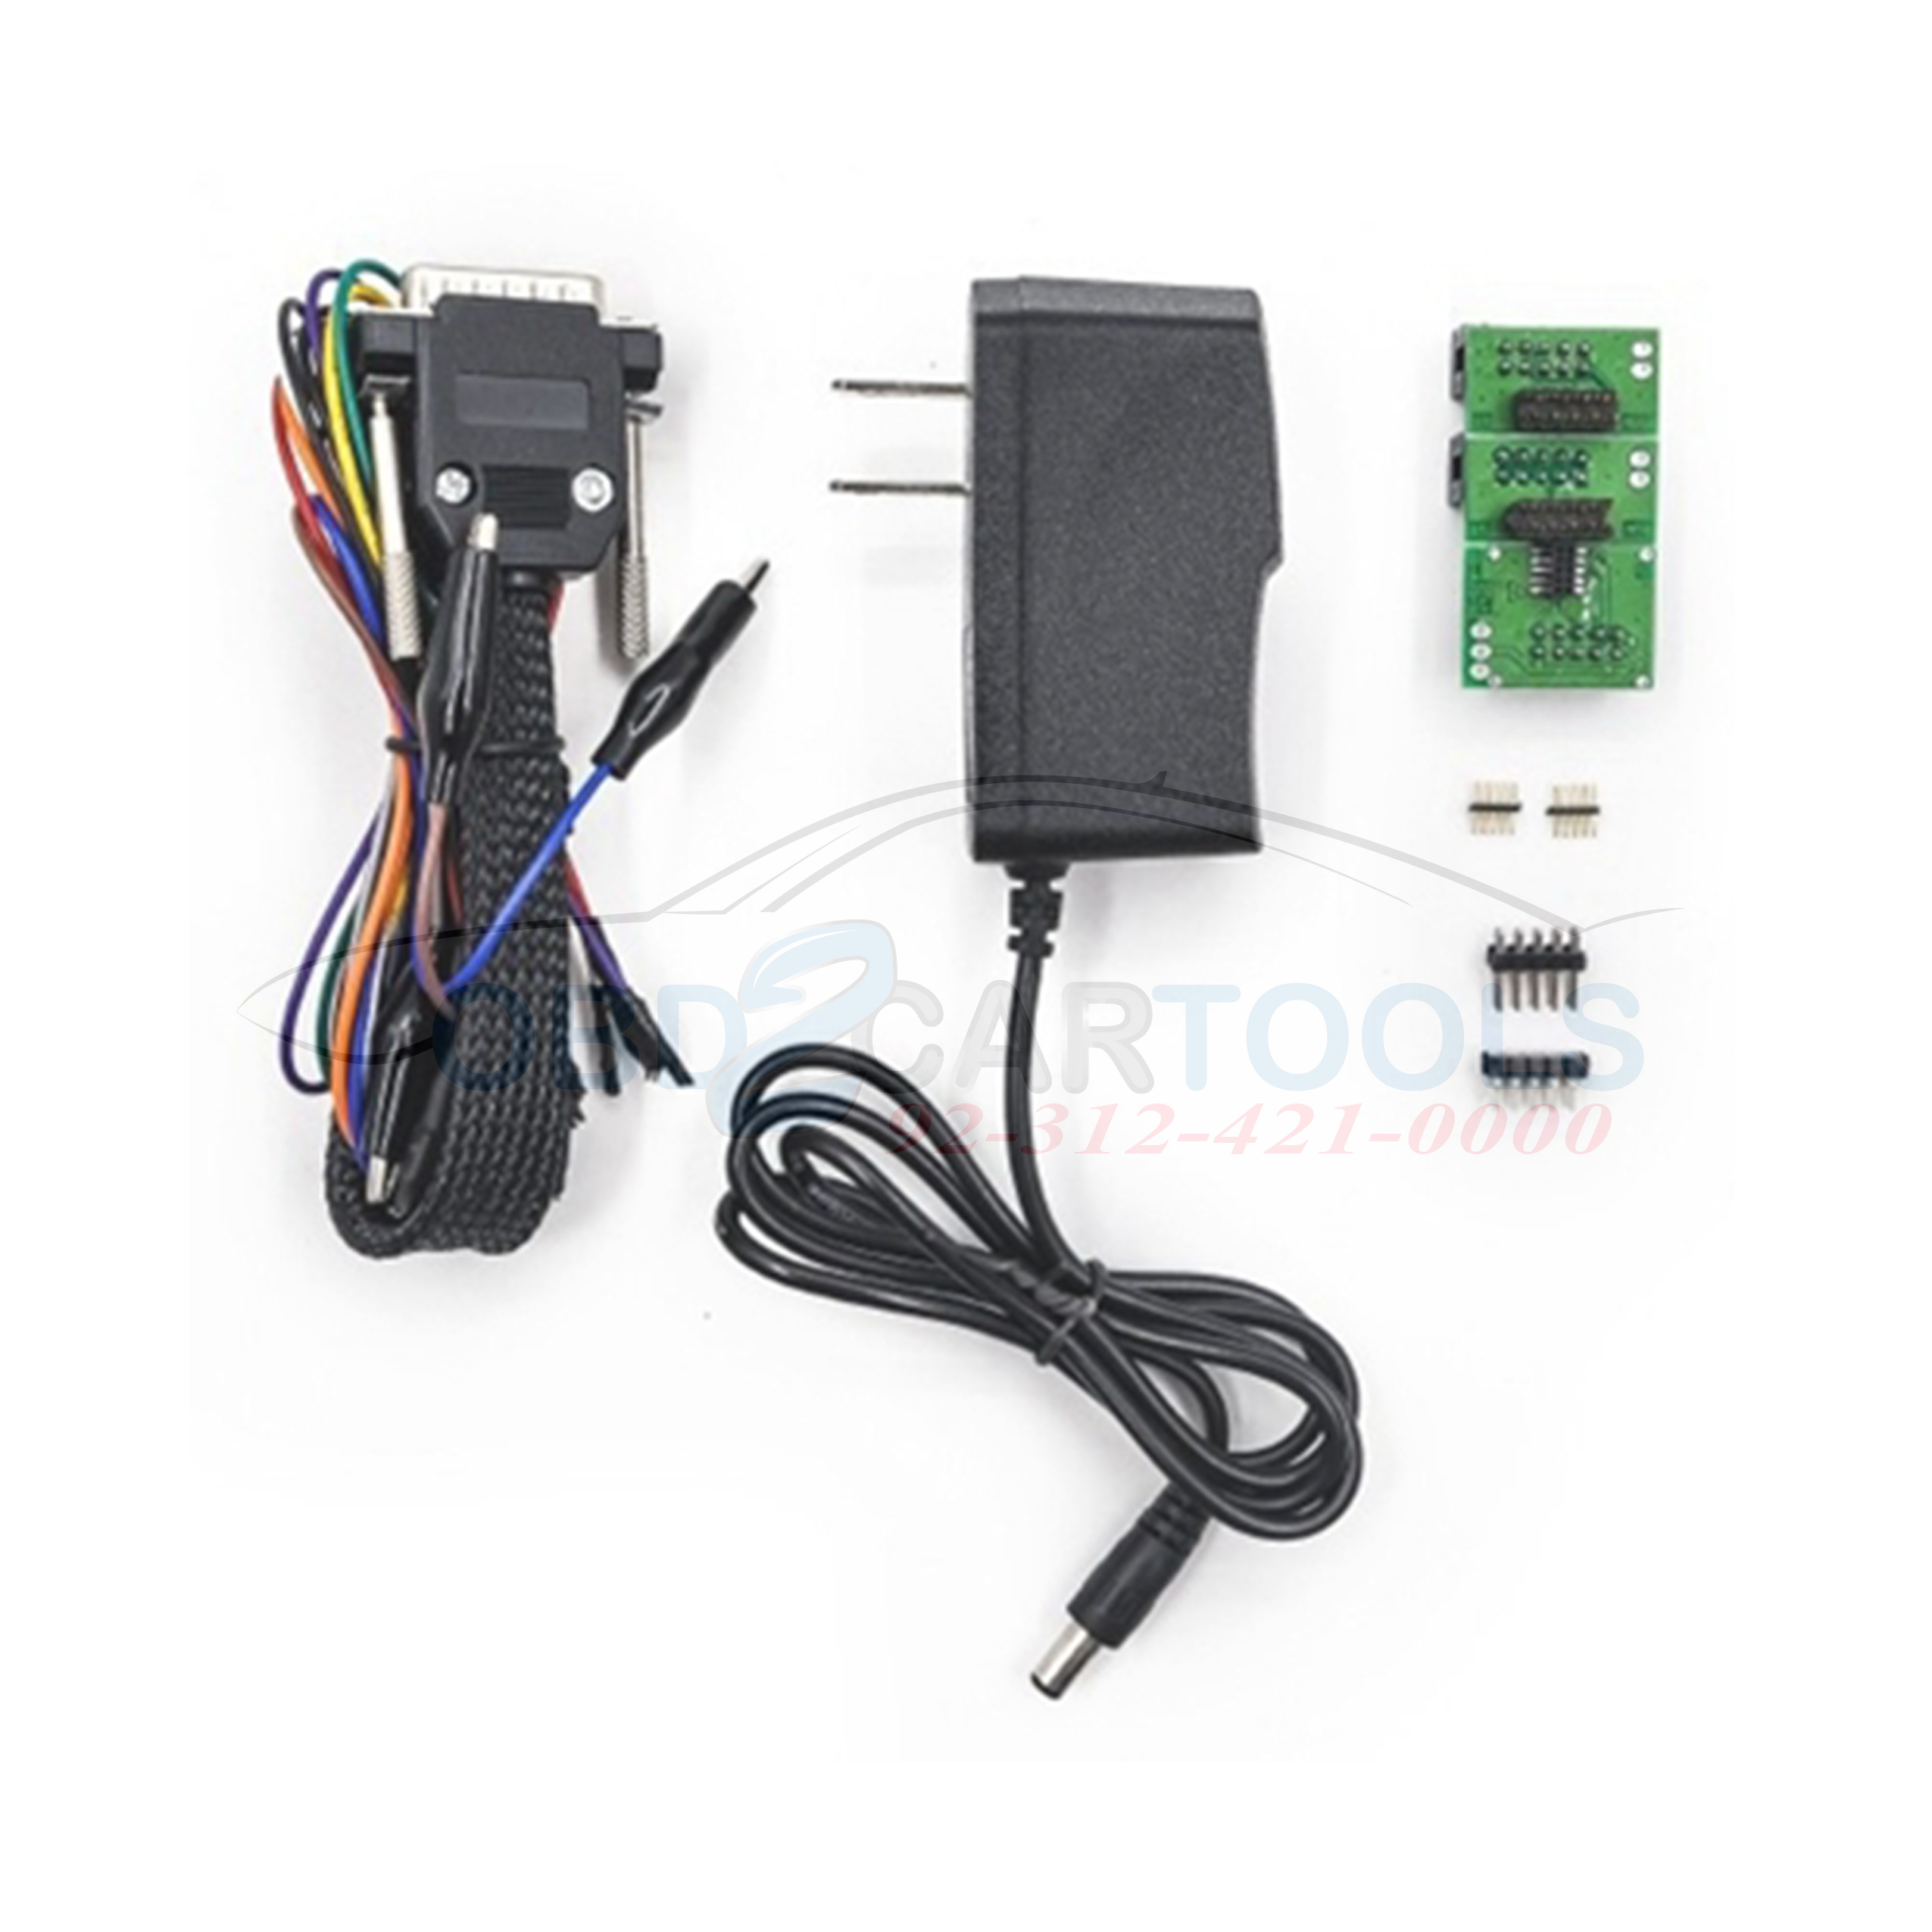 K-TAG V2 13 Firmware V6 070 ECU Programming Tool Master Version